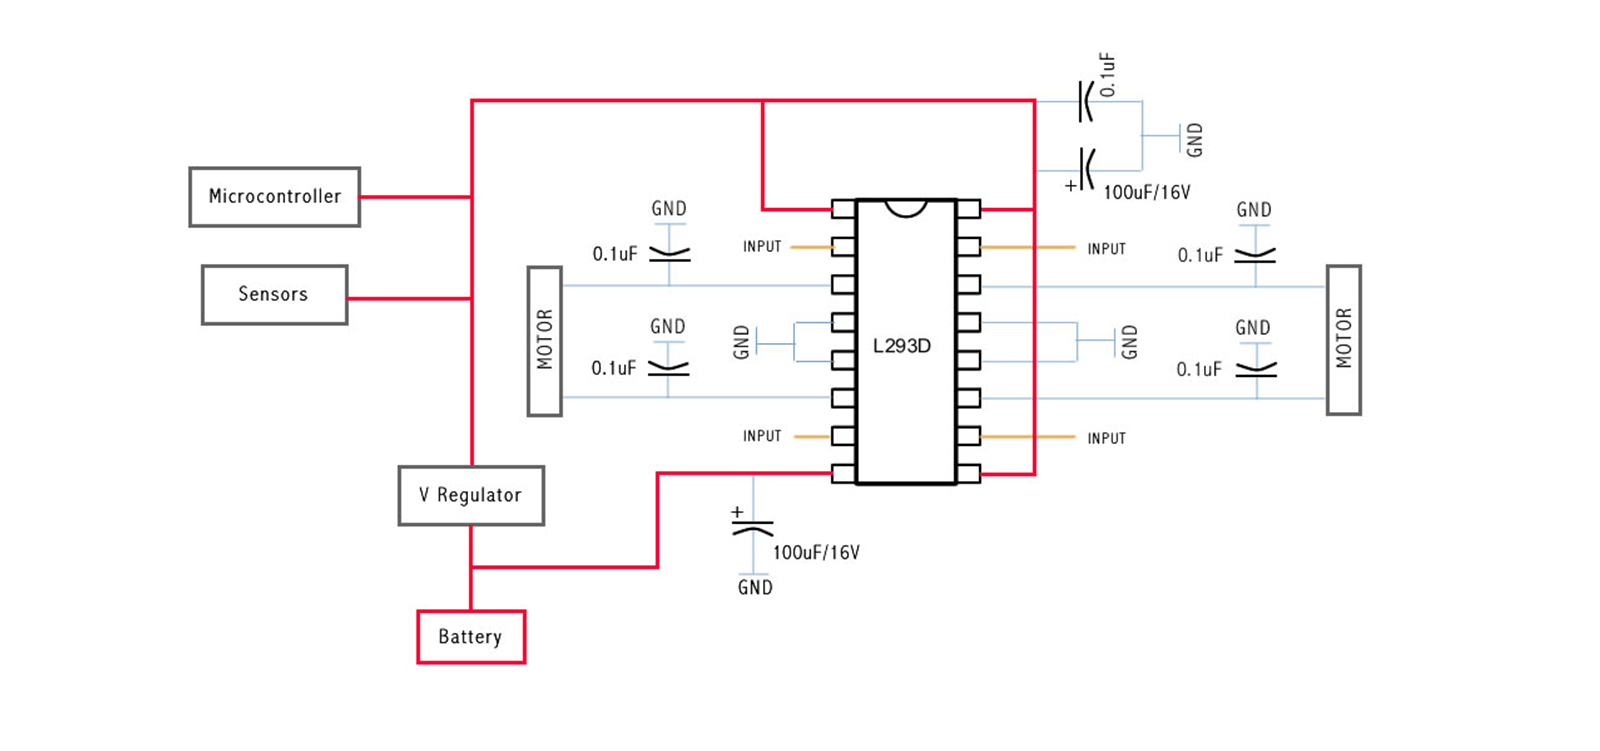 H Bridge with Capacitors